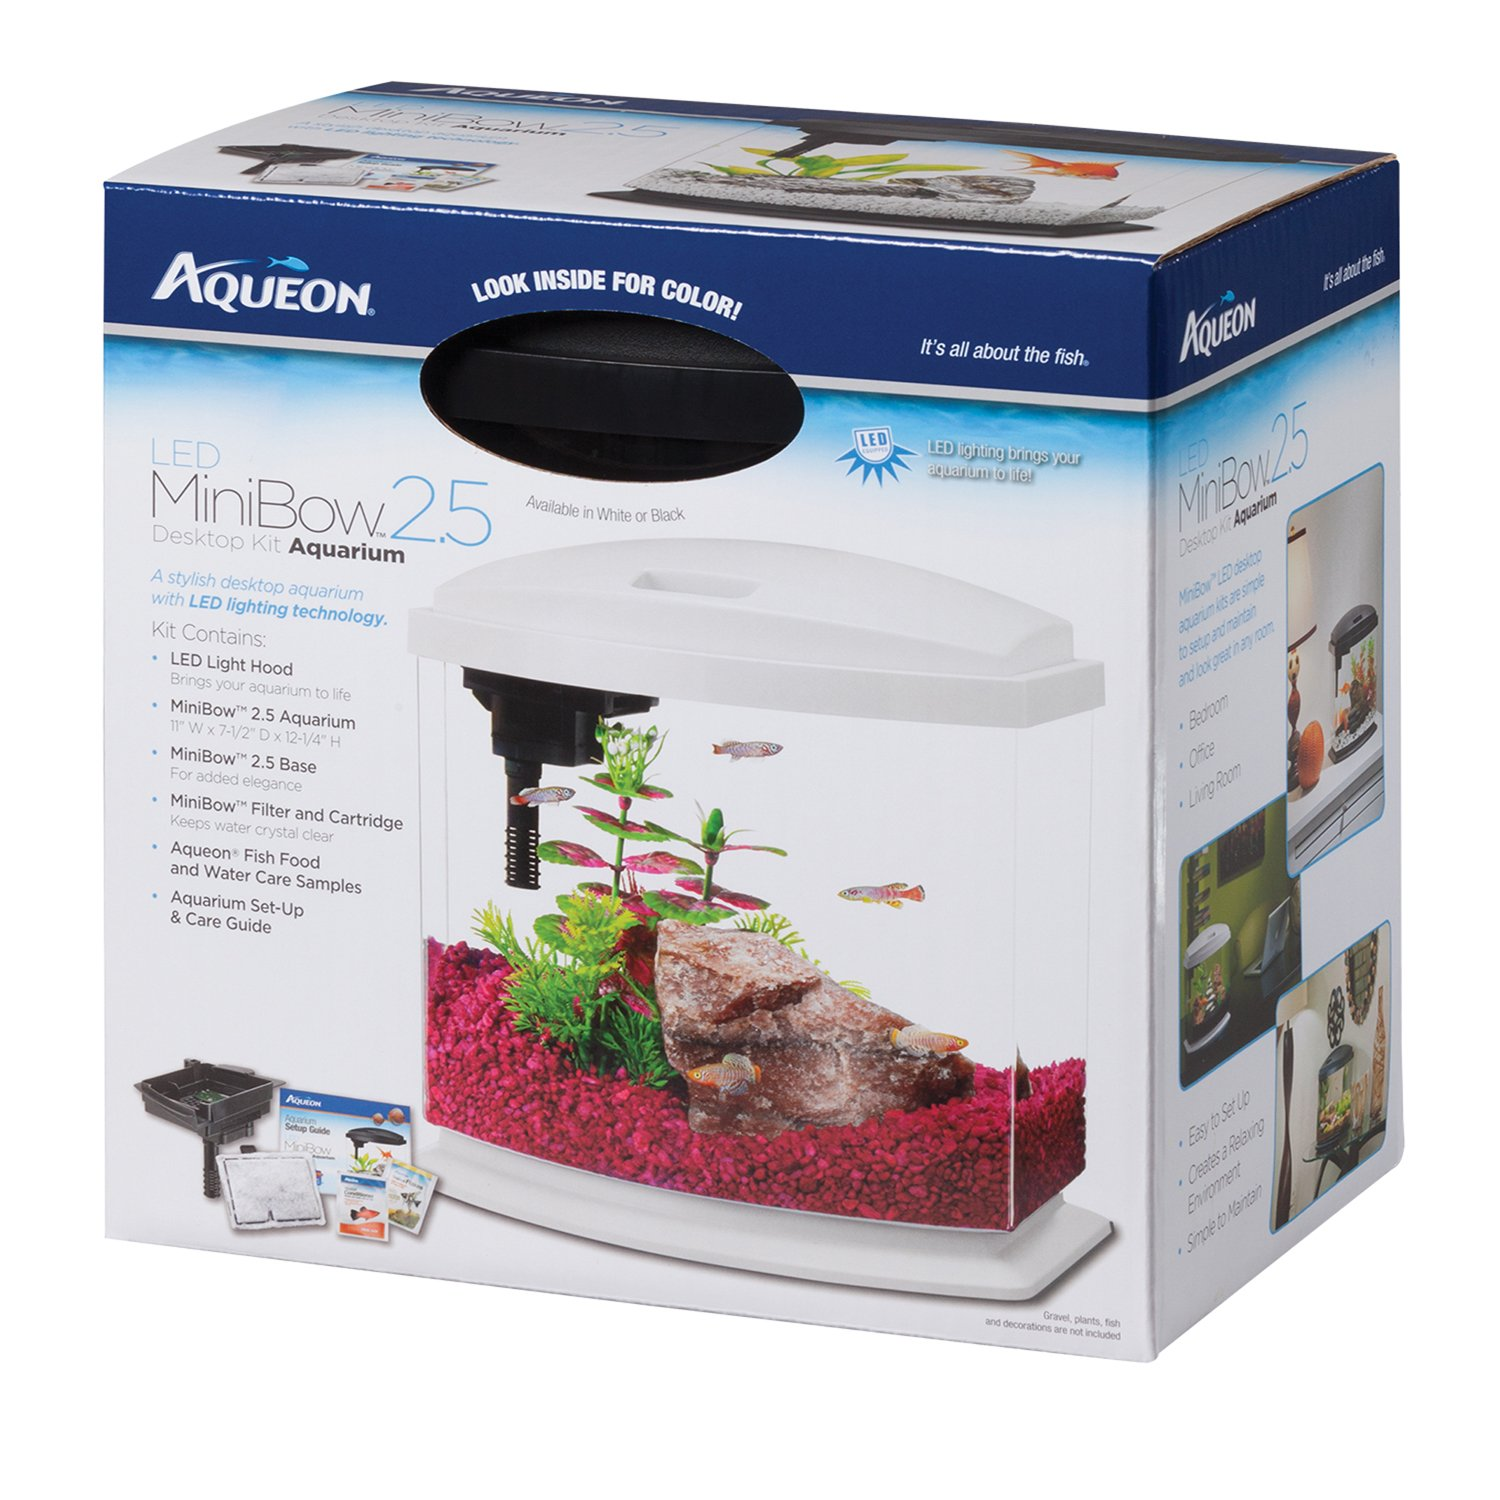 Fish aquarium tanks for sale - Aqueon Bettabow Led Desktop Fish Aquarium Kit